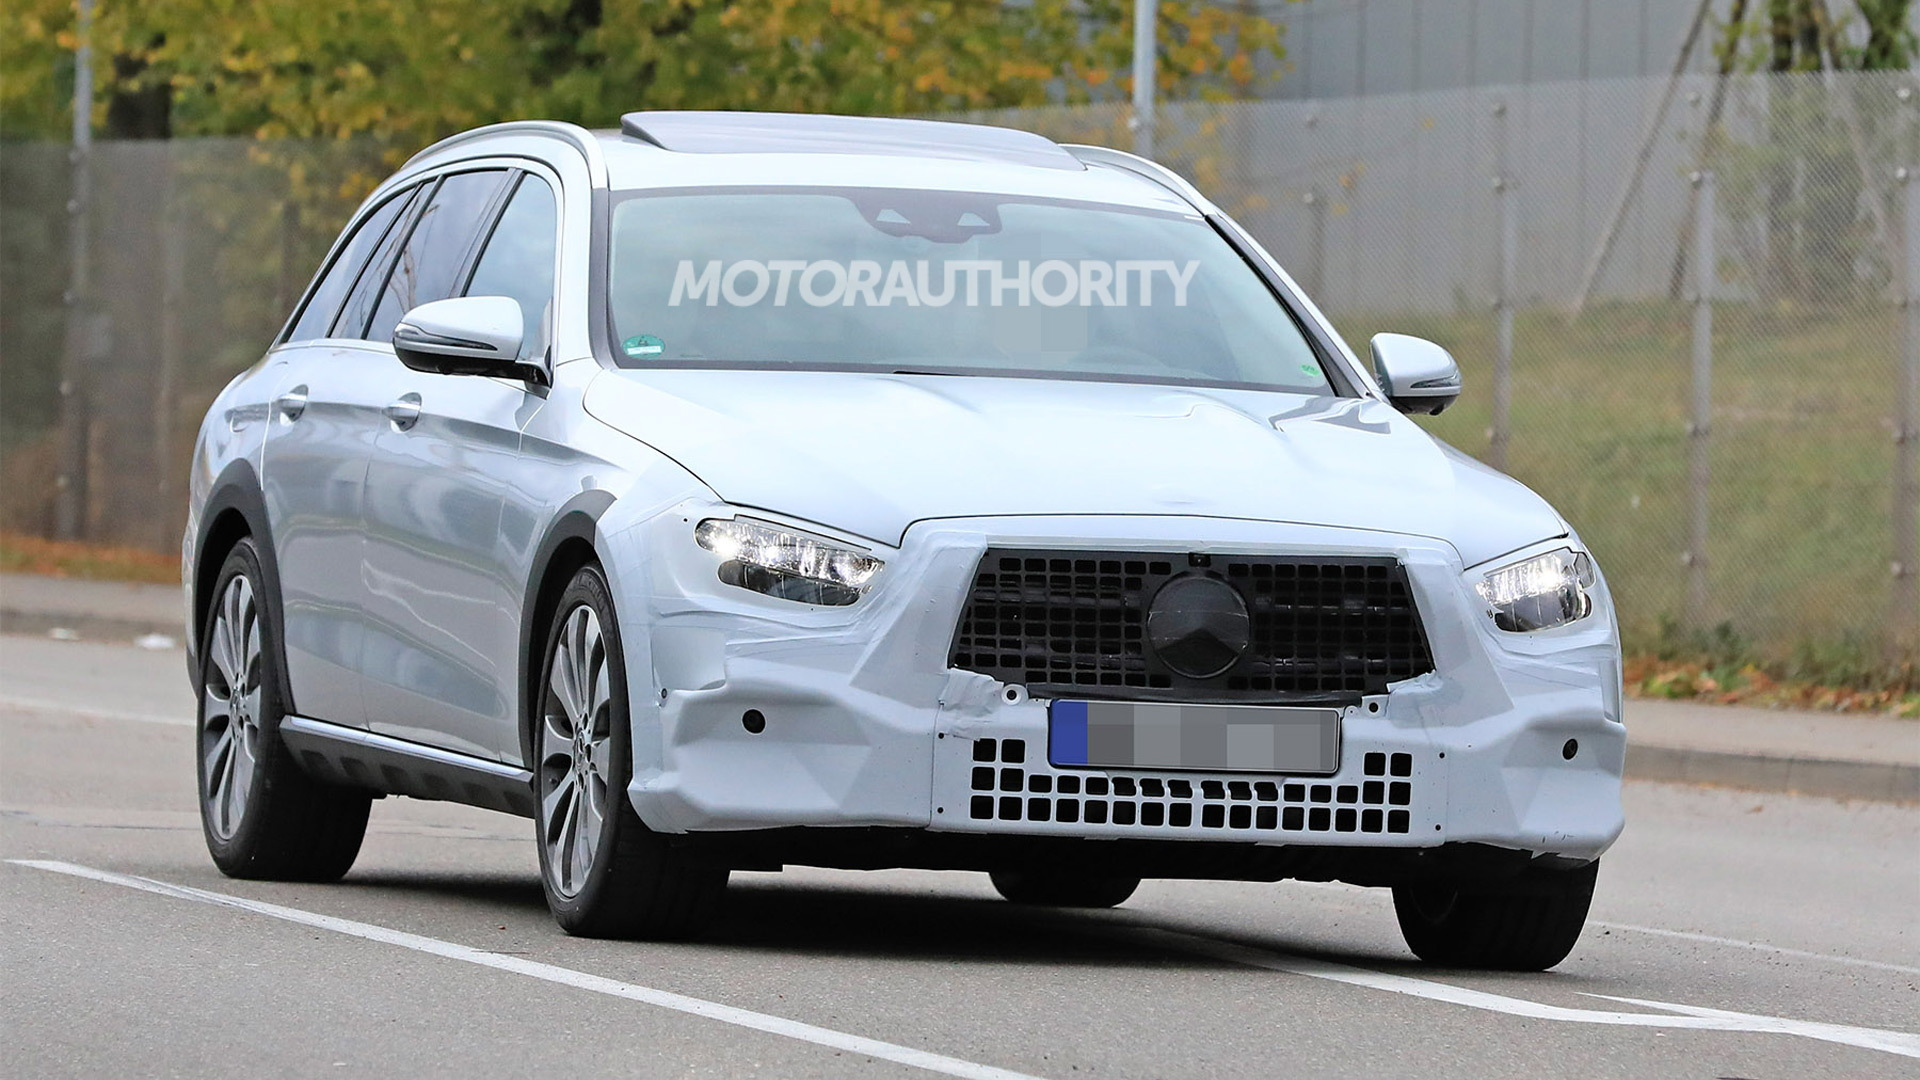 2021 Mercedes-Benz E-Class All-Terrain spy shots - Image via S. Baldauf/SB-Medien